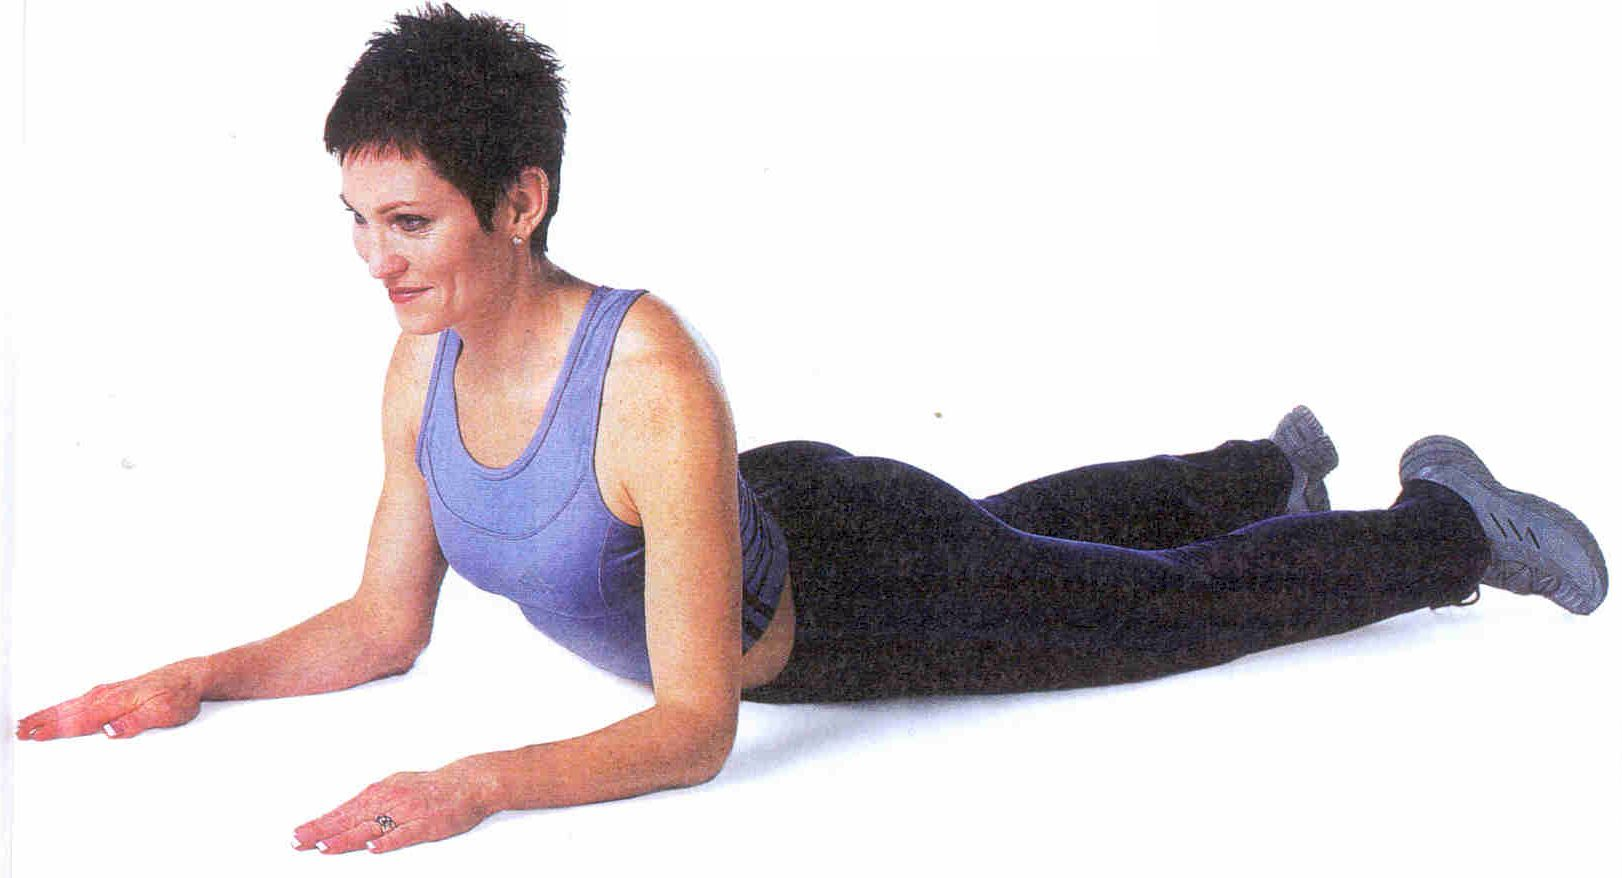 Four exercises in under 10 minutes to firm your core | The ...